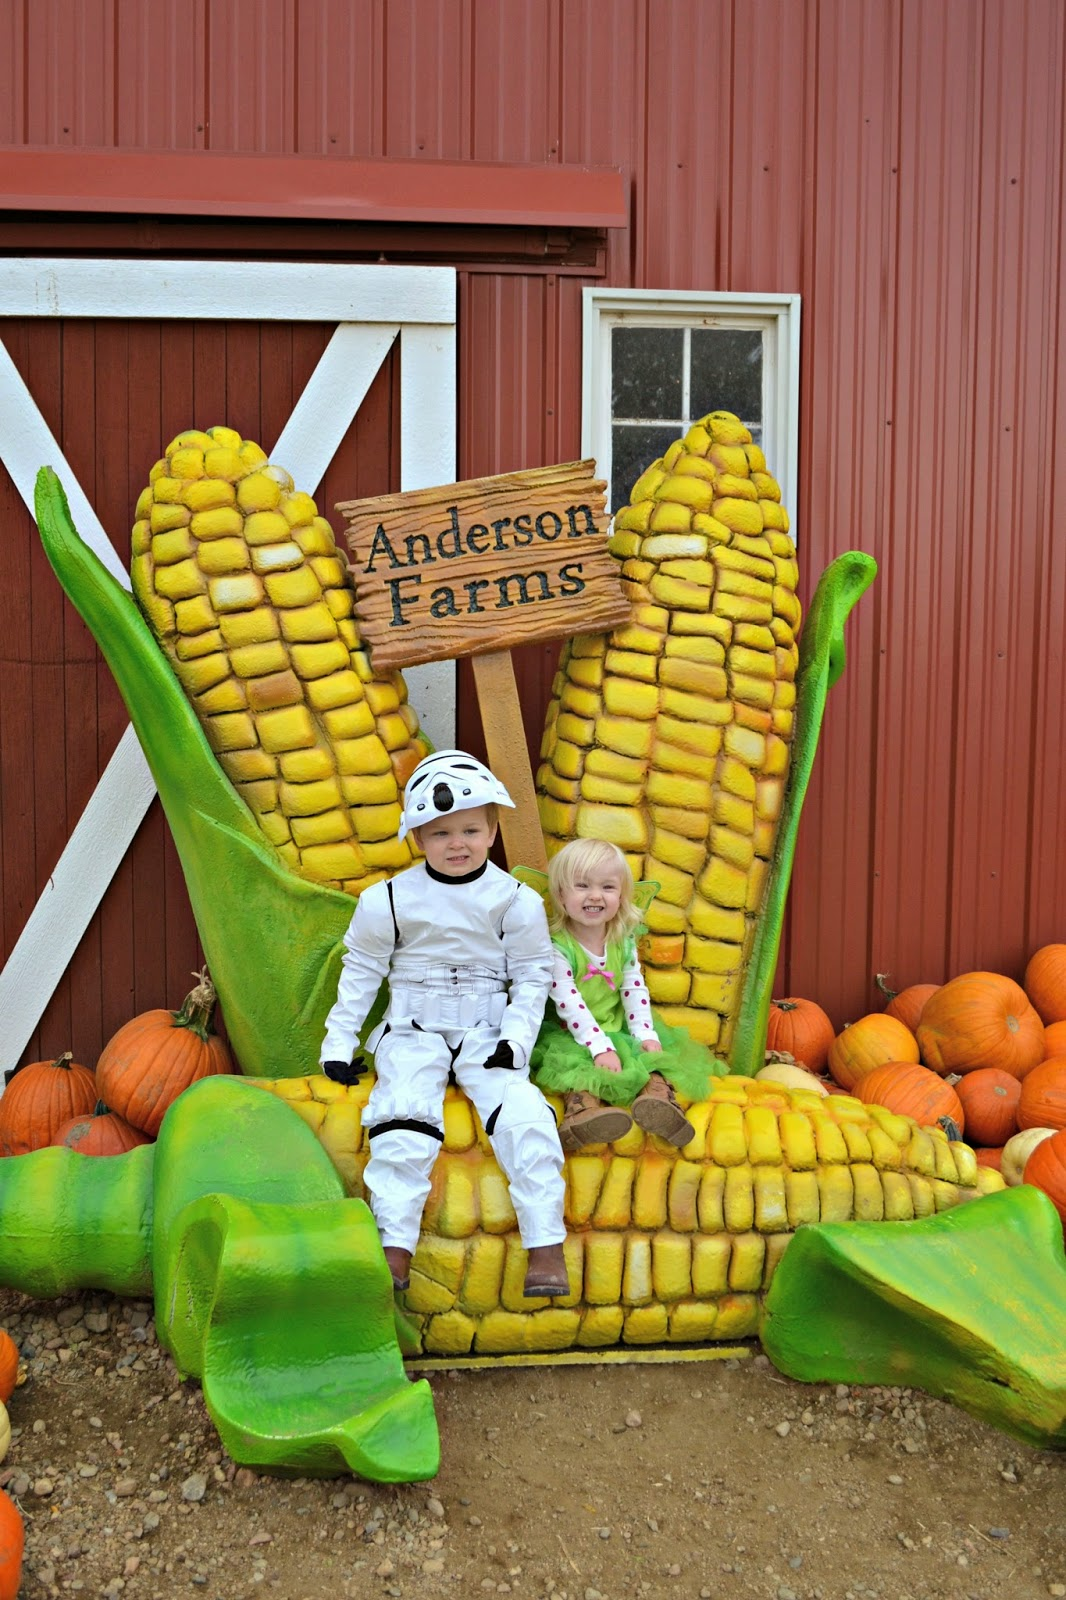 Anderson Farms in Erie Colorado #Coupon Anderson Farms Coupon Anderson Farms Pumpkin Patch Anderson Farms Corn Maze Anderson Farms Fall Festival in Erie Colorado #Coupon